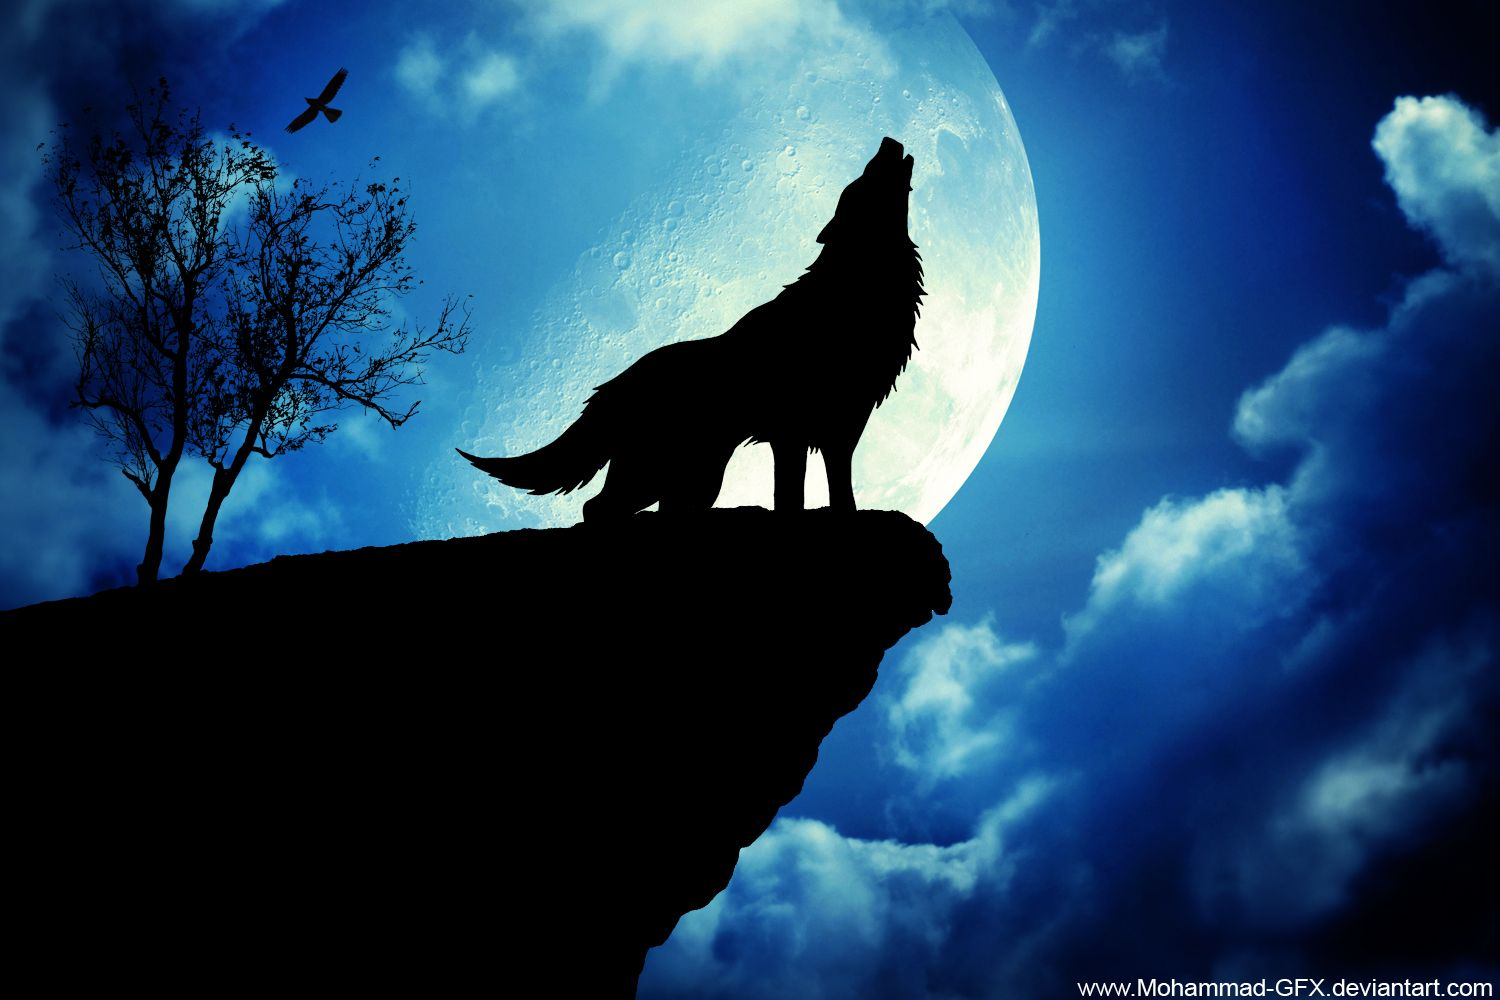 Hd wallpaper wolf - Download Exclusive Wolf Wallpaper Wallpaper Full Hd Wallpapers